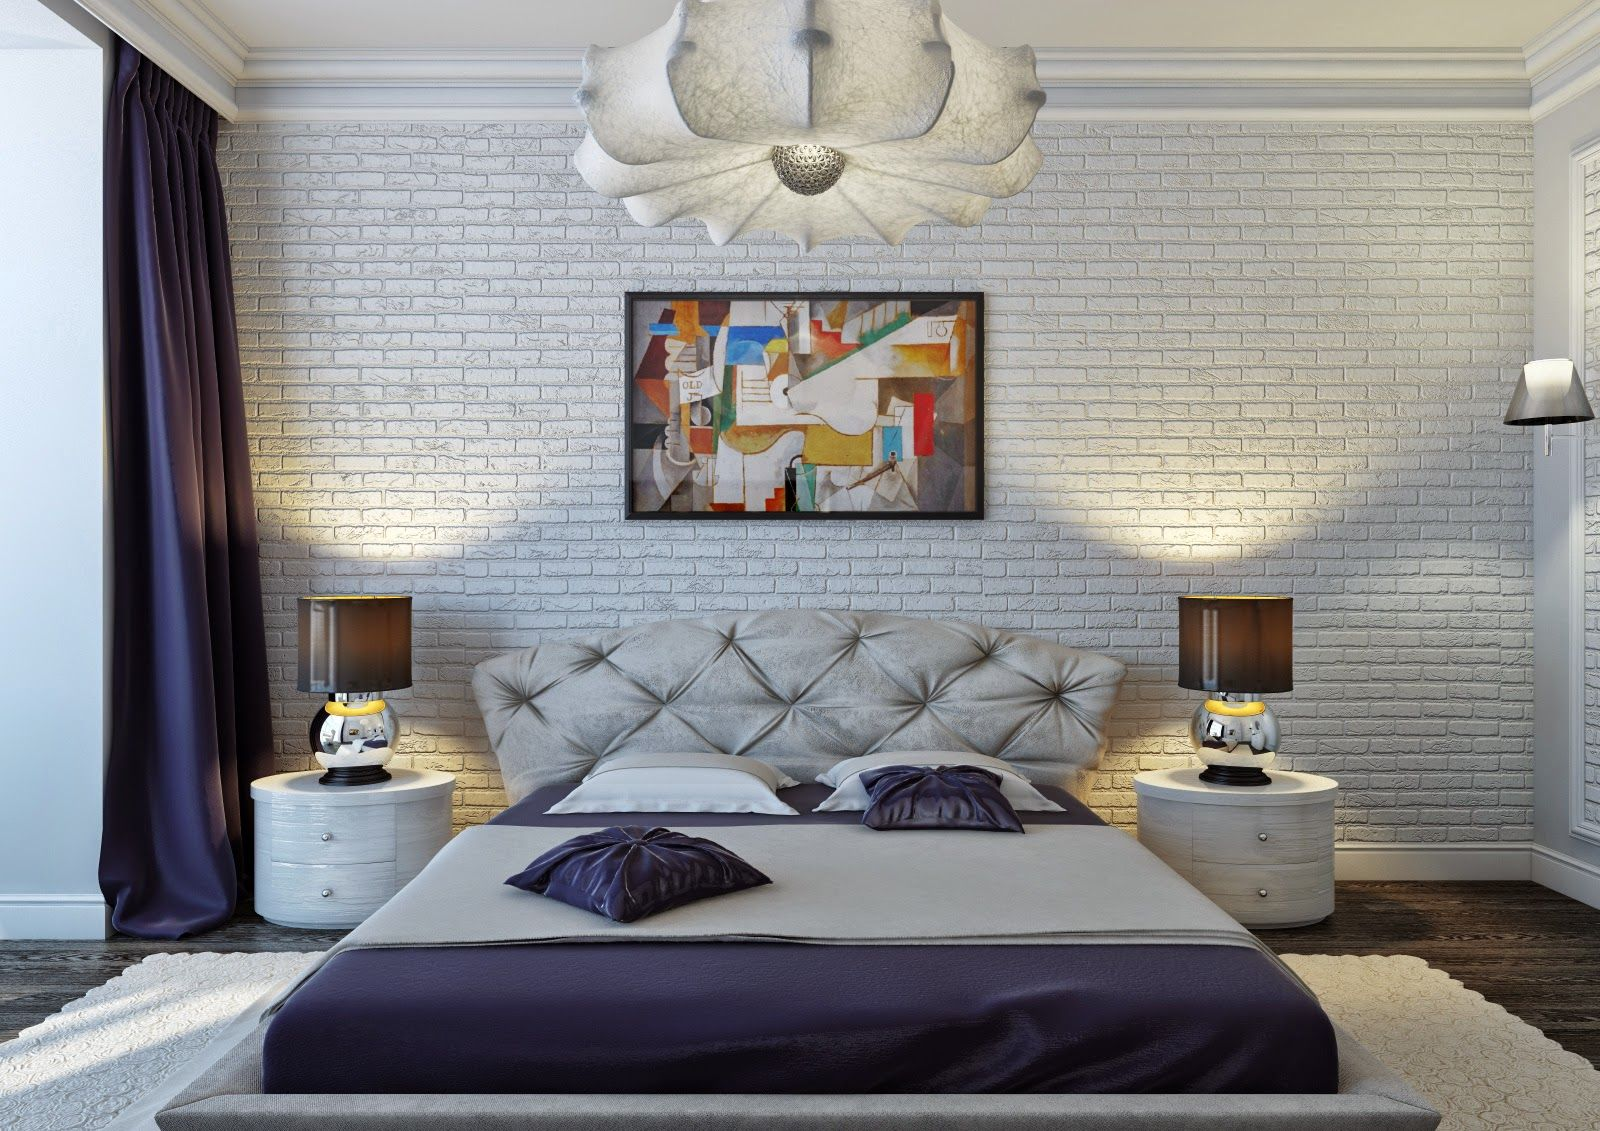 spanish style bedroom interior with brick wall and luxury spanish furniture accessories 2015